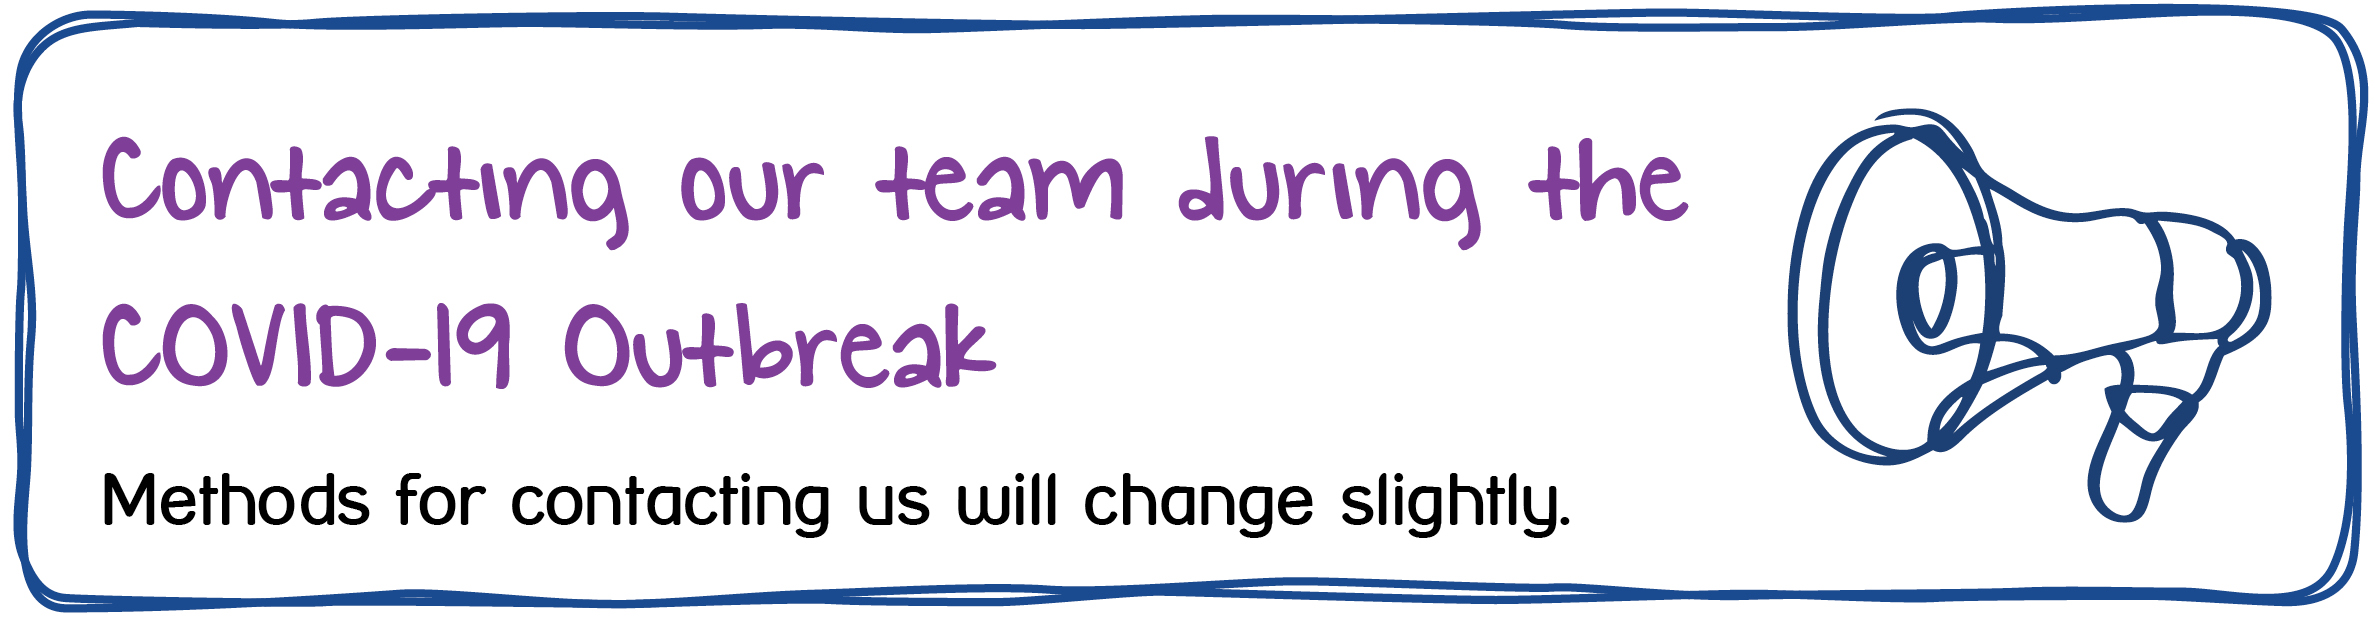 Contacting our team during the COVID-19 Outbreak. Methods for contacting us will change slightly.